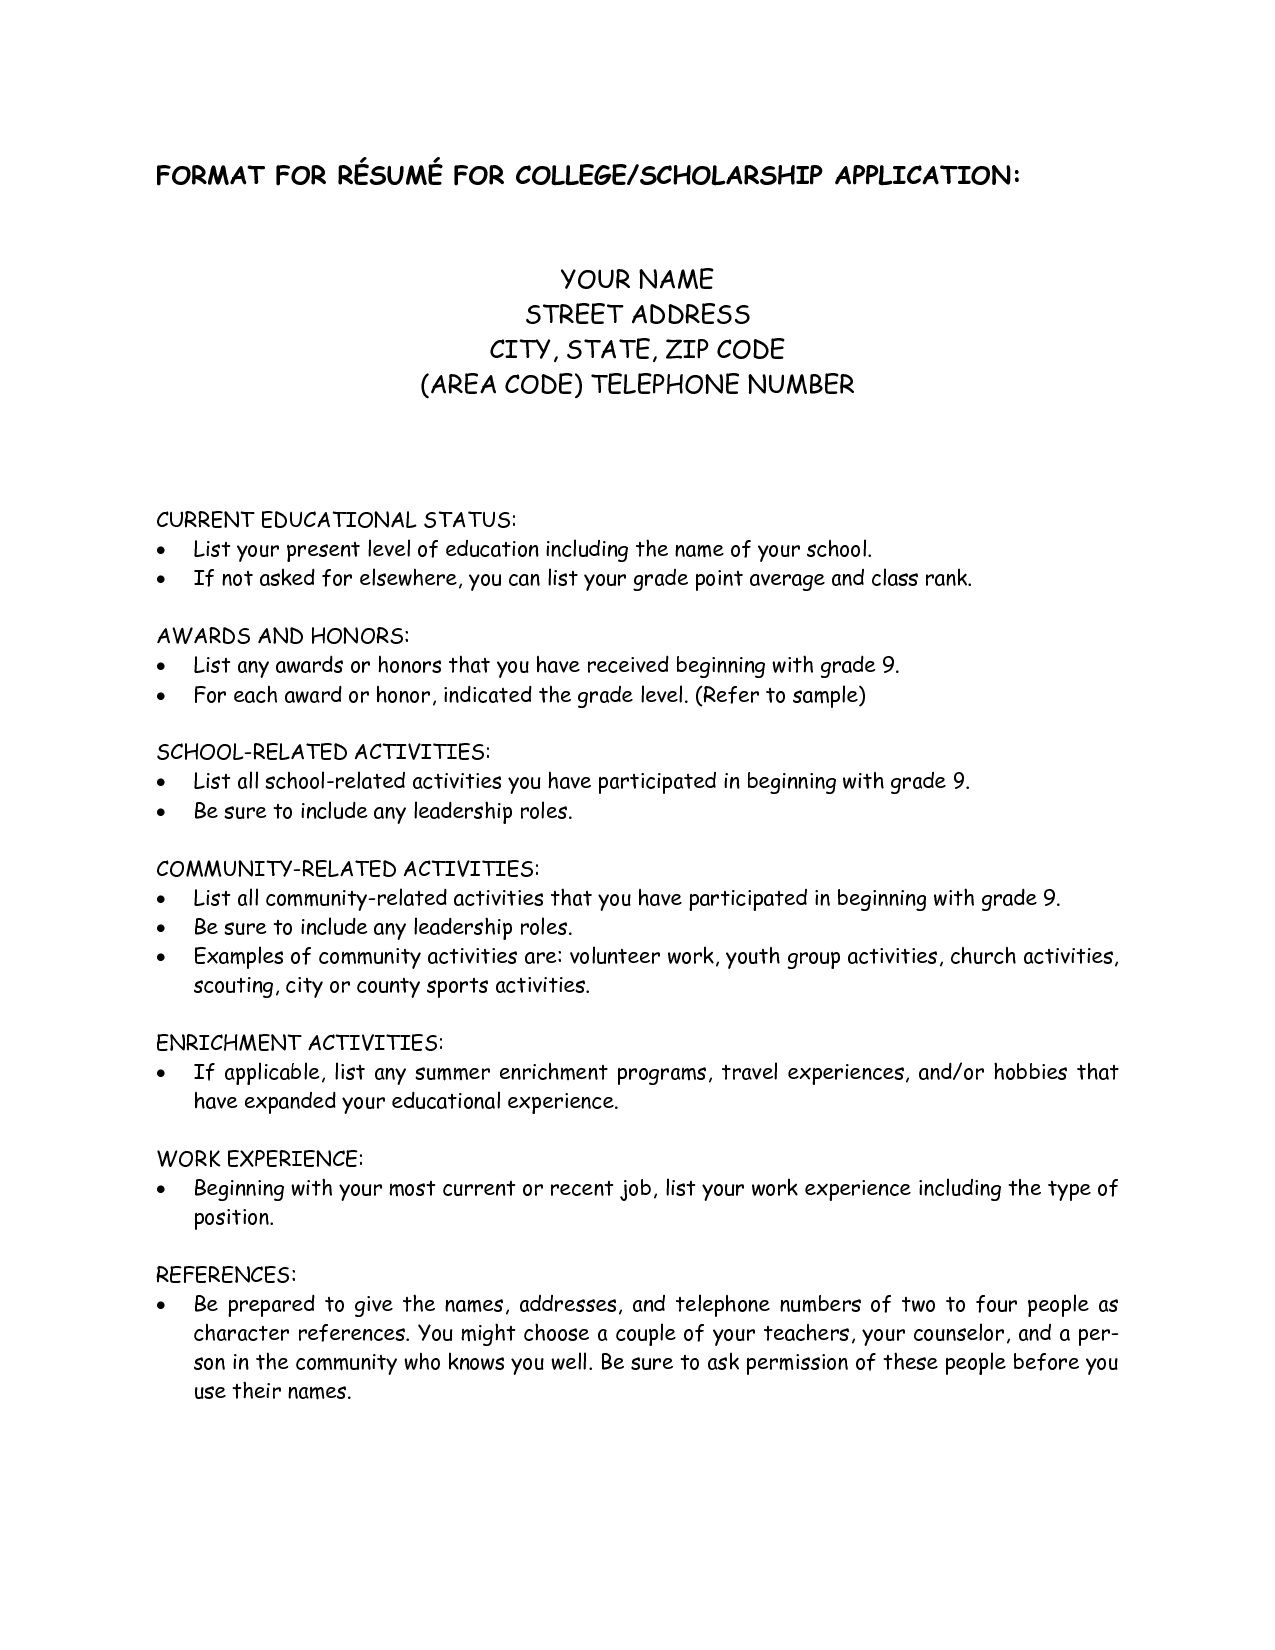 College Scholarship Resume Template 1197 Http Topresume Info